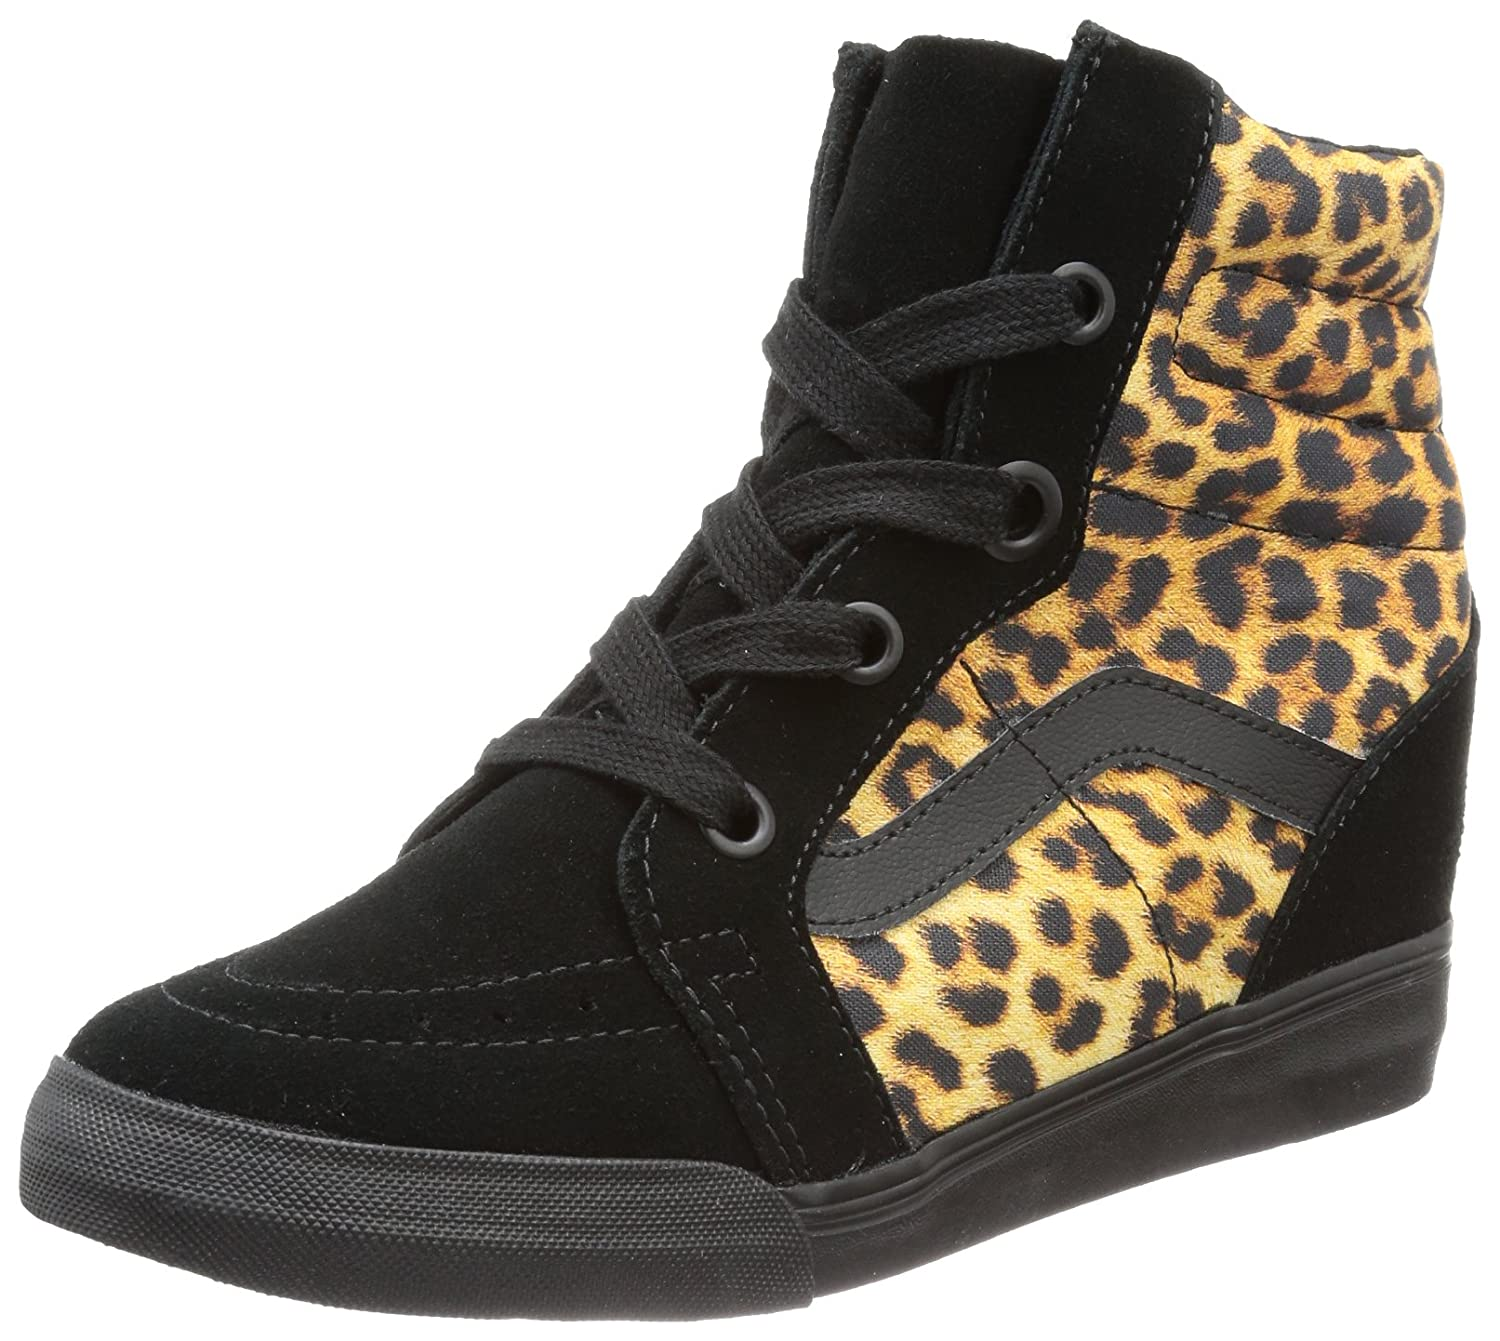 e1c18f0ba5 Vans Unisex - Adult U SK8-HI Wedge (Leopard) Black Trainers Black ...